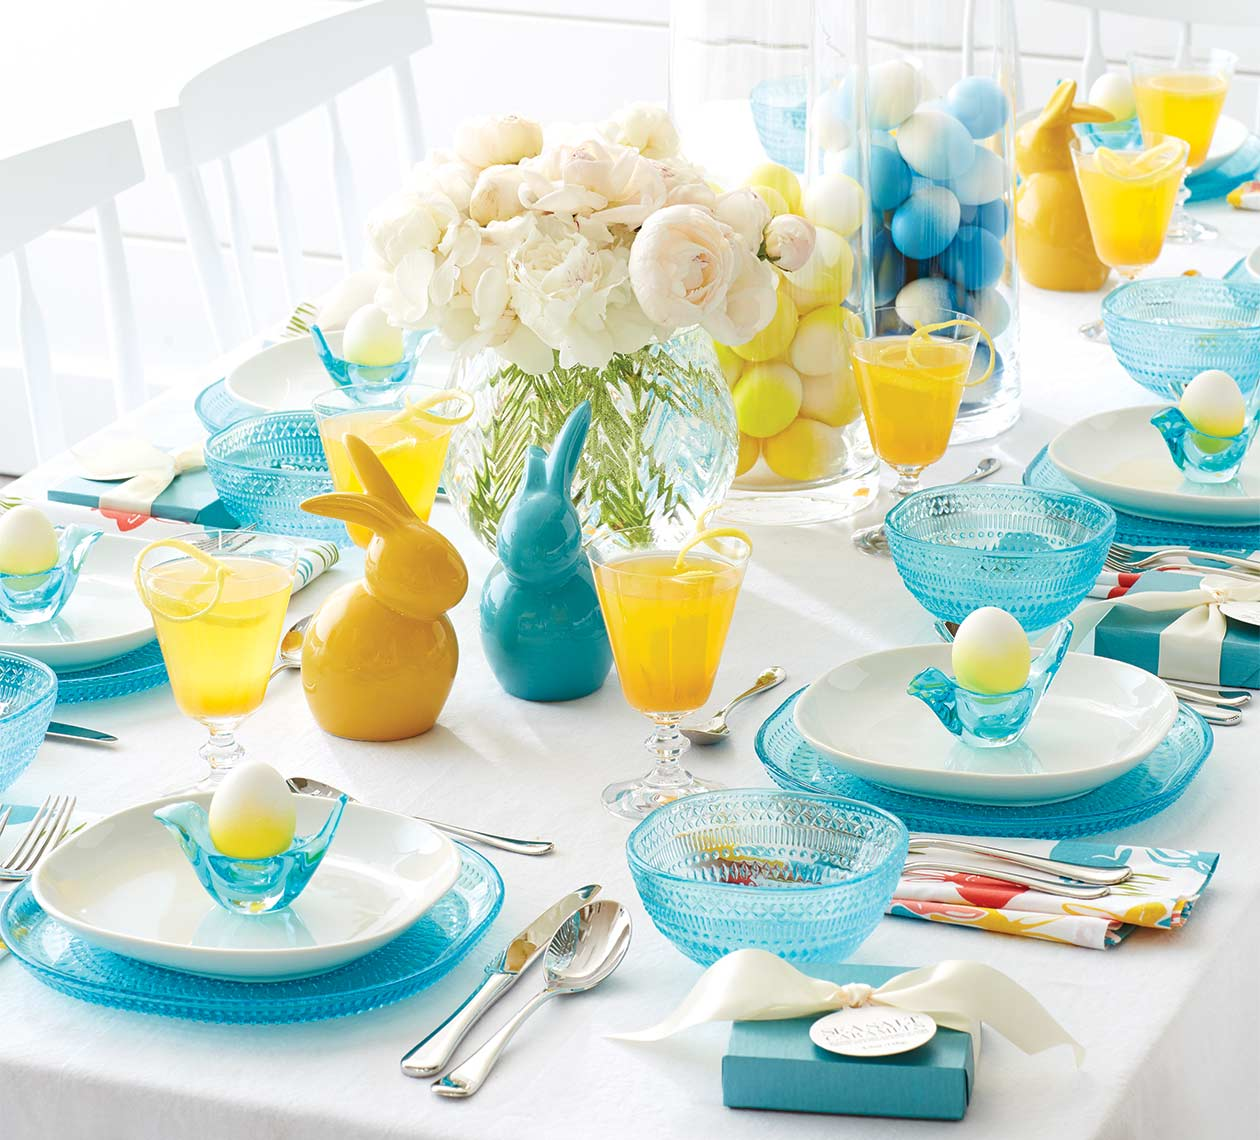 Easter table photograph for the Crate and Barrel catalog